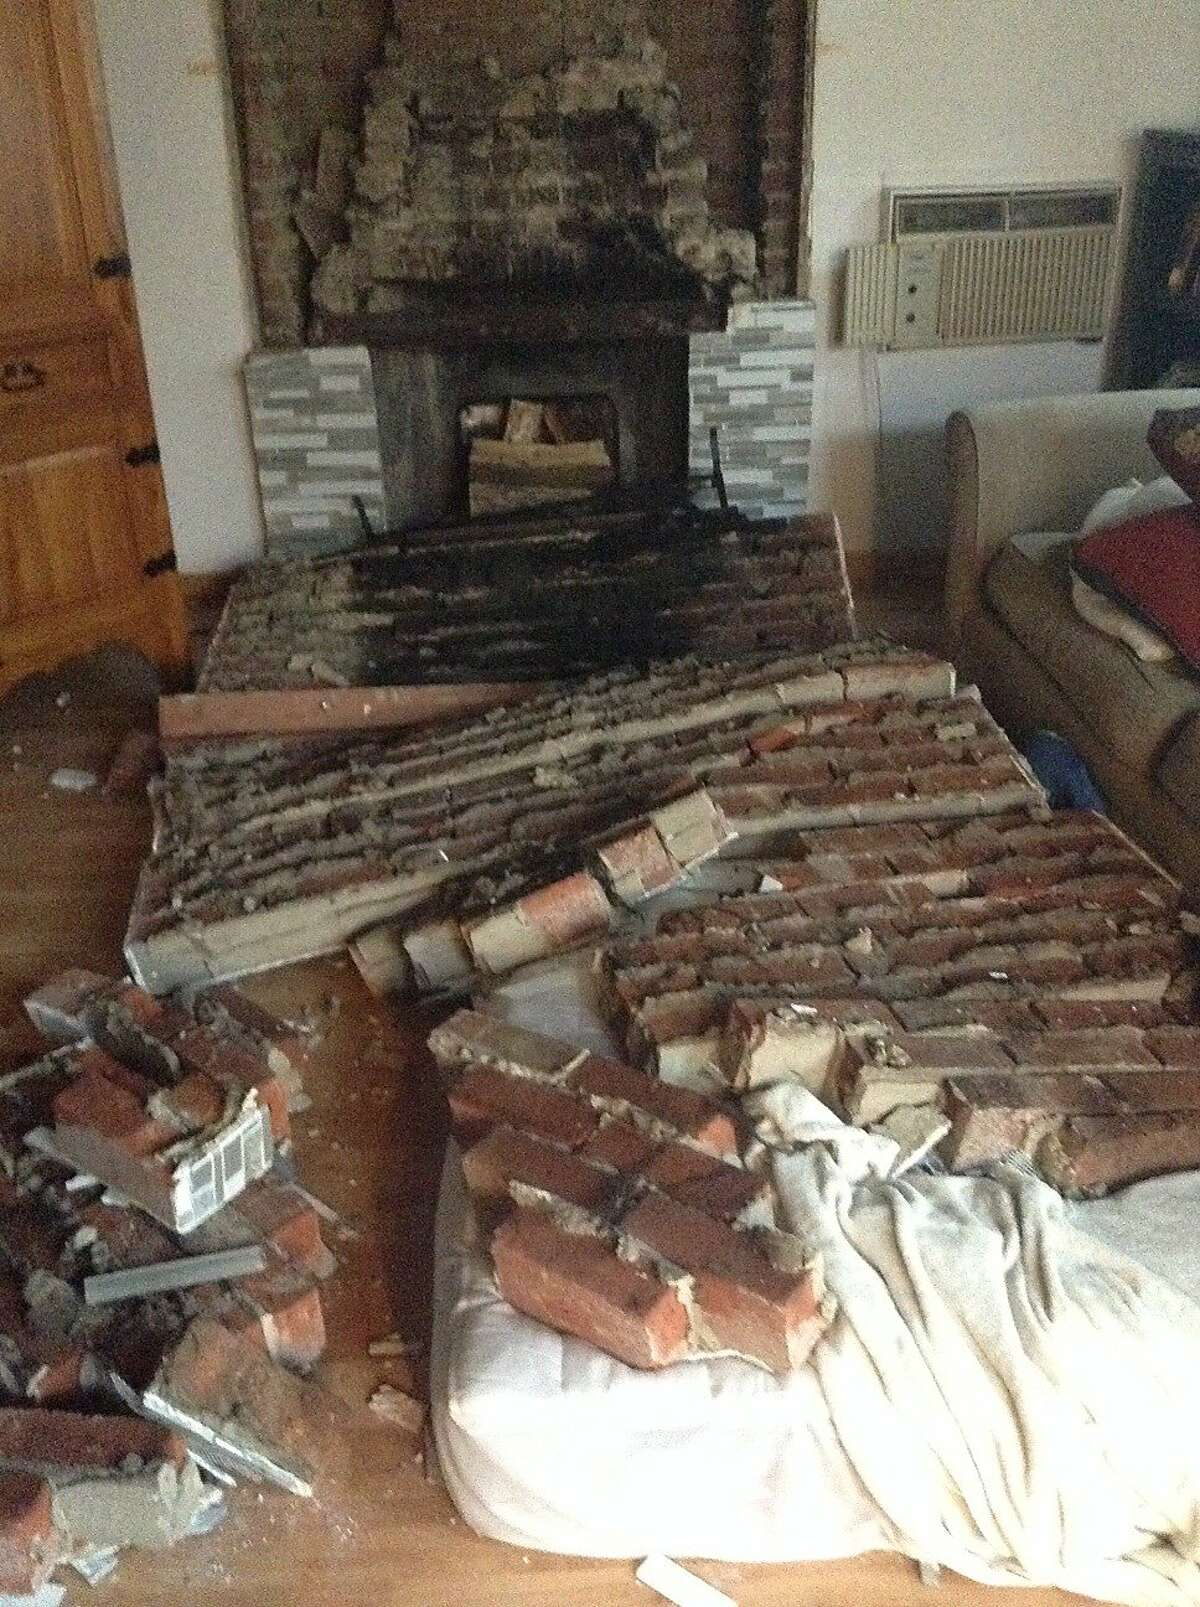 The chimney that fell on Nicholas Dillon during the Northern California earthquake on Sunday, Aug. 24, 2014.